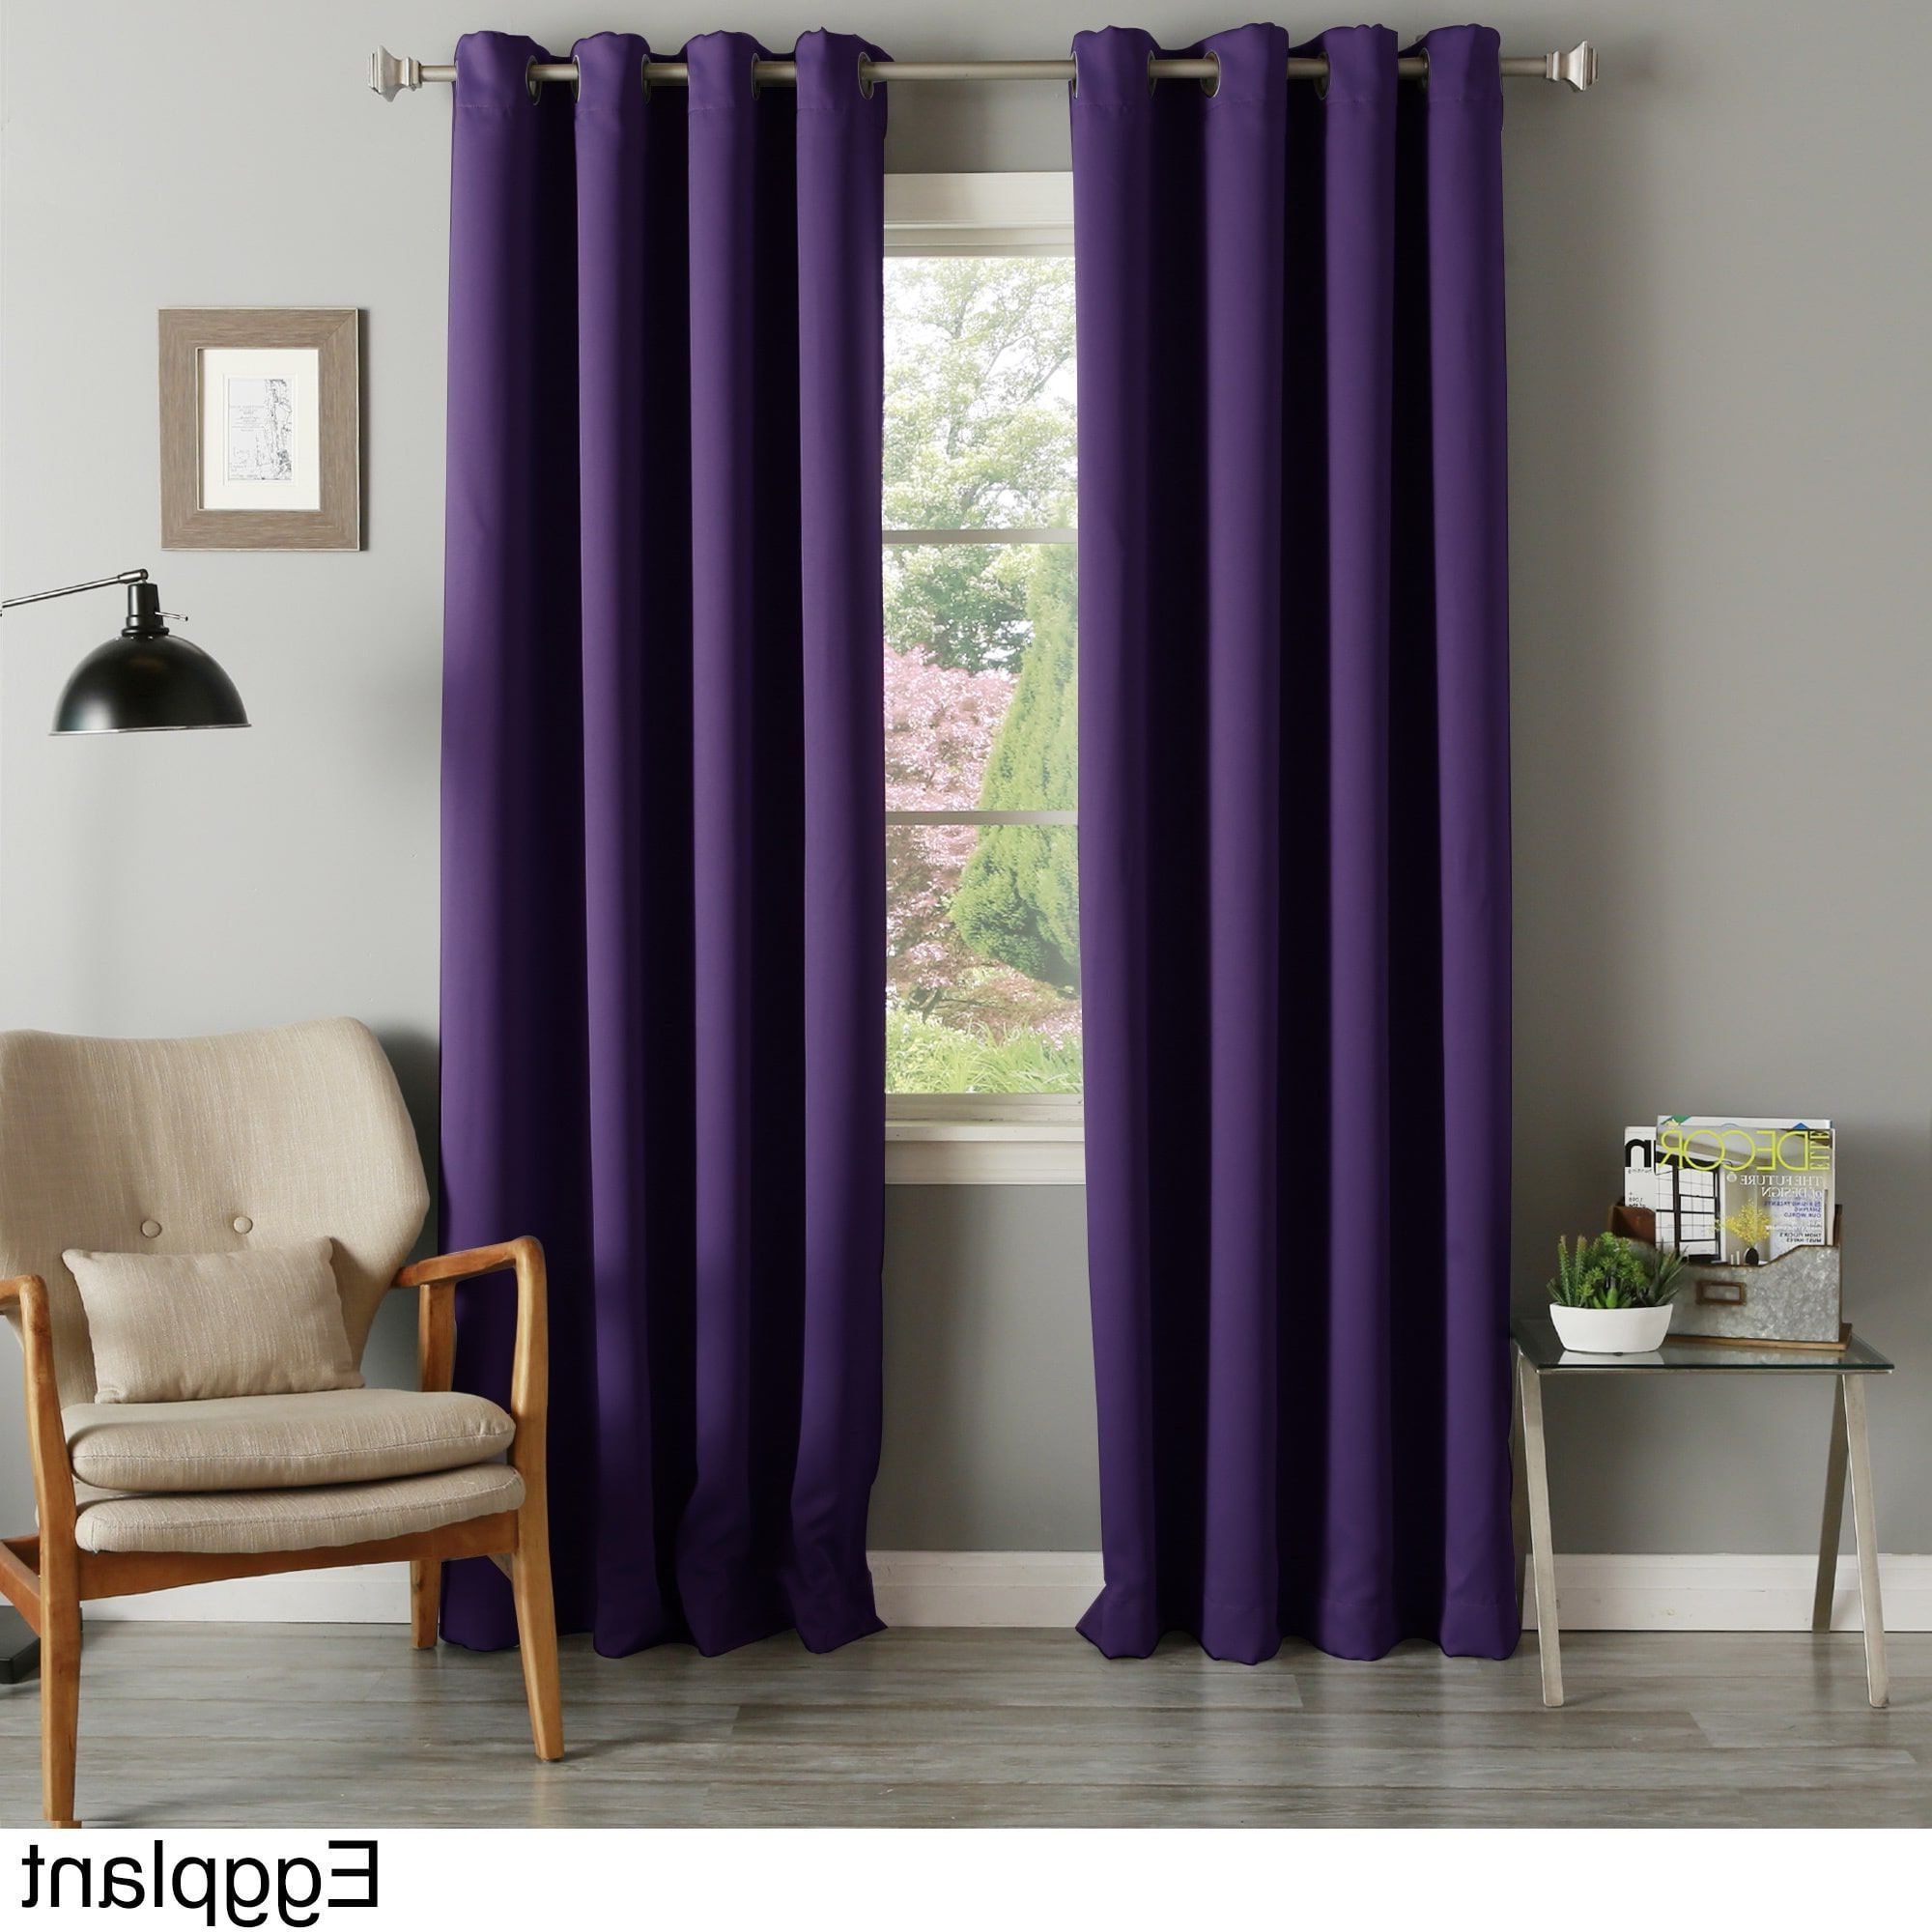 Solid Thermal Insulated Blackout Curtain Panel Pairs With Regard To Fashionable Aurora Home Grommet Top Thermal Insulated 96 Inch Blackout (View 19 of 20)